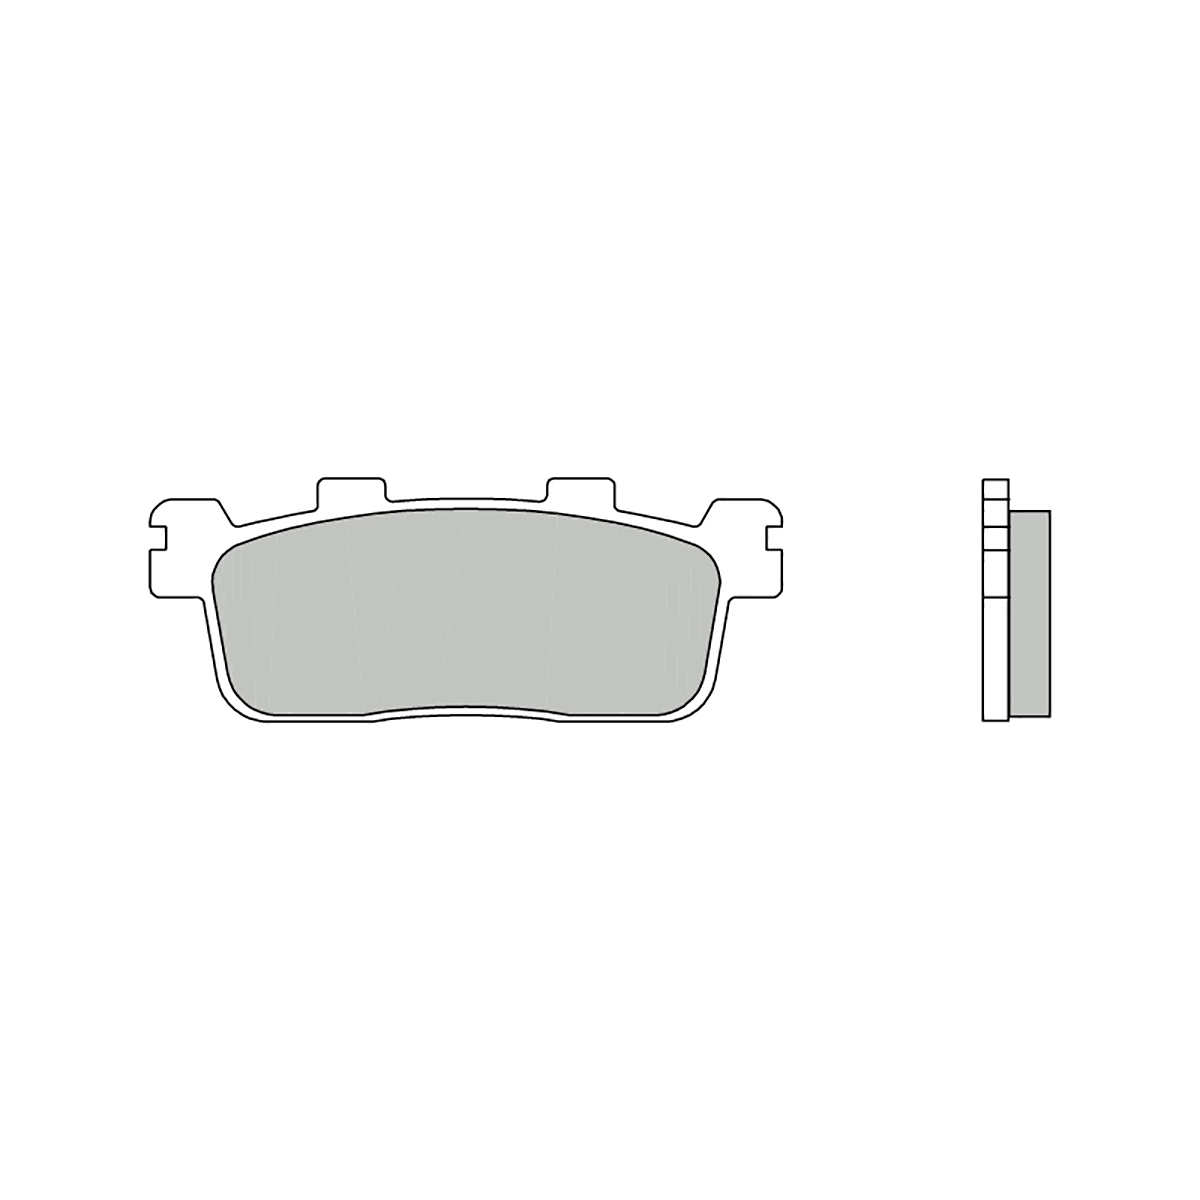 Rear Brembo CC Brake Pads for Kymco PEOPLE S 200 2005 > 2007